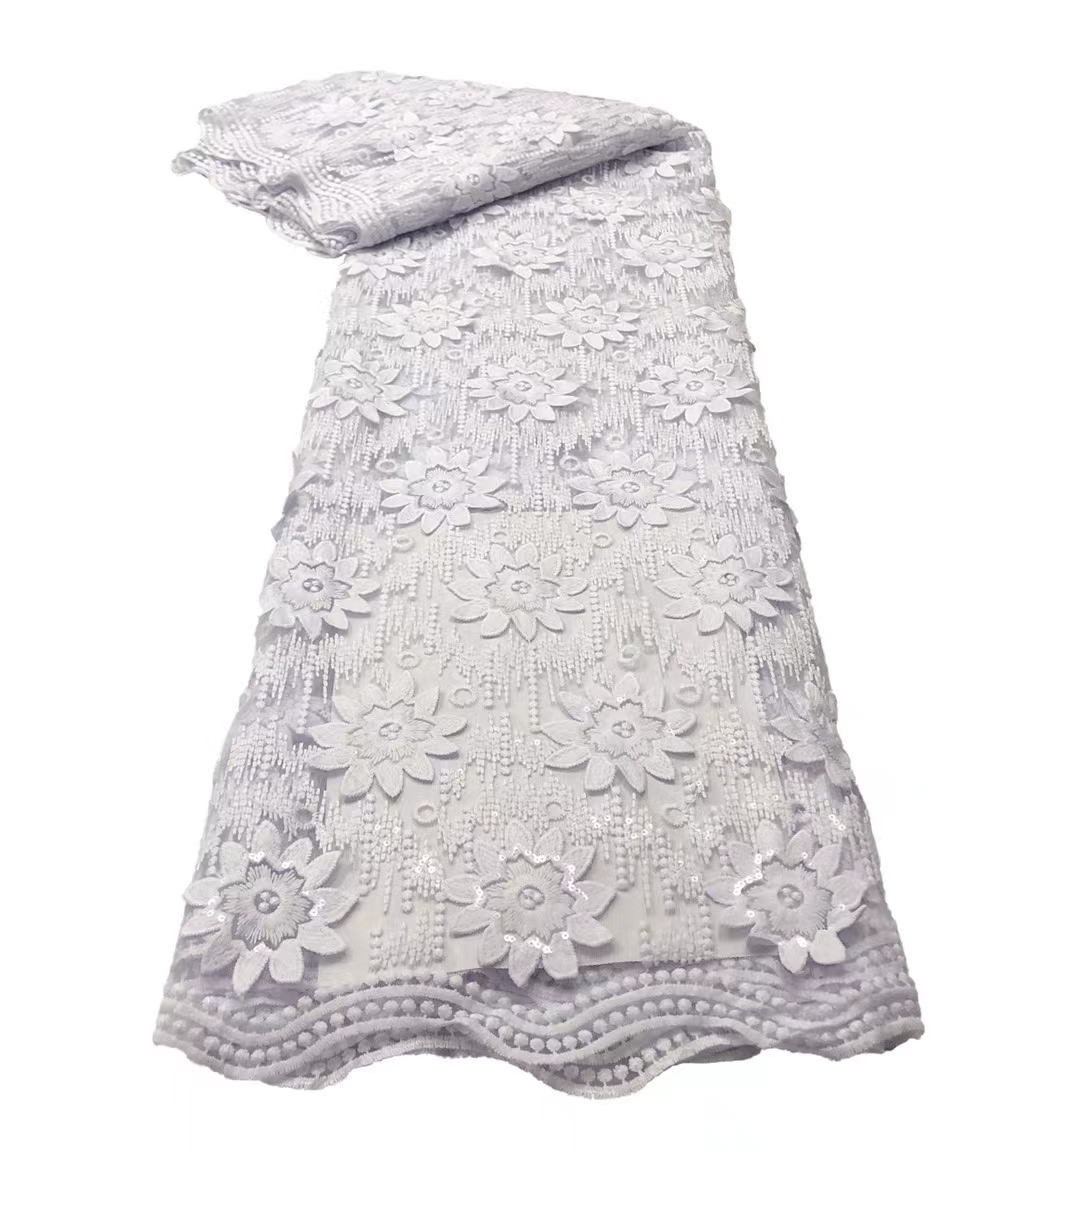 Latest African Sequins Lace Fabric 2021 High Quality Lace Material French Nigerian Lace Fabrics For Women Party Sewing